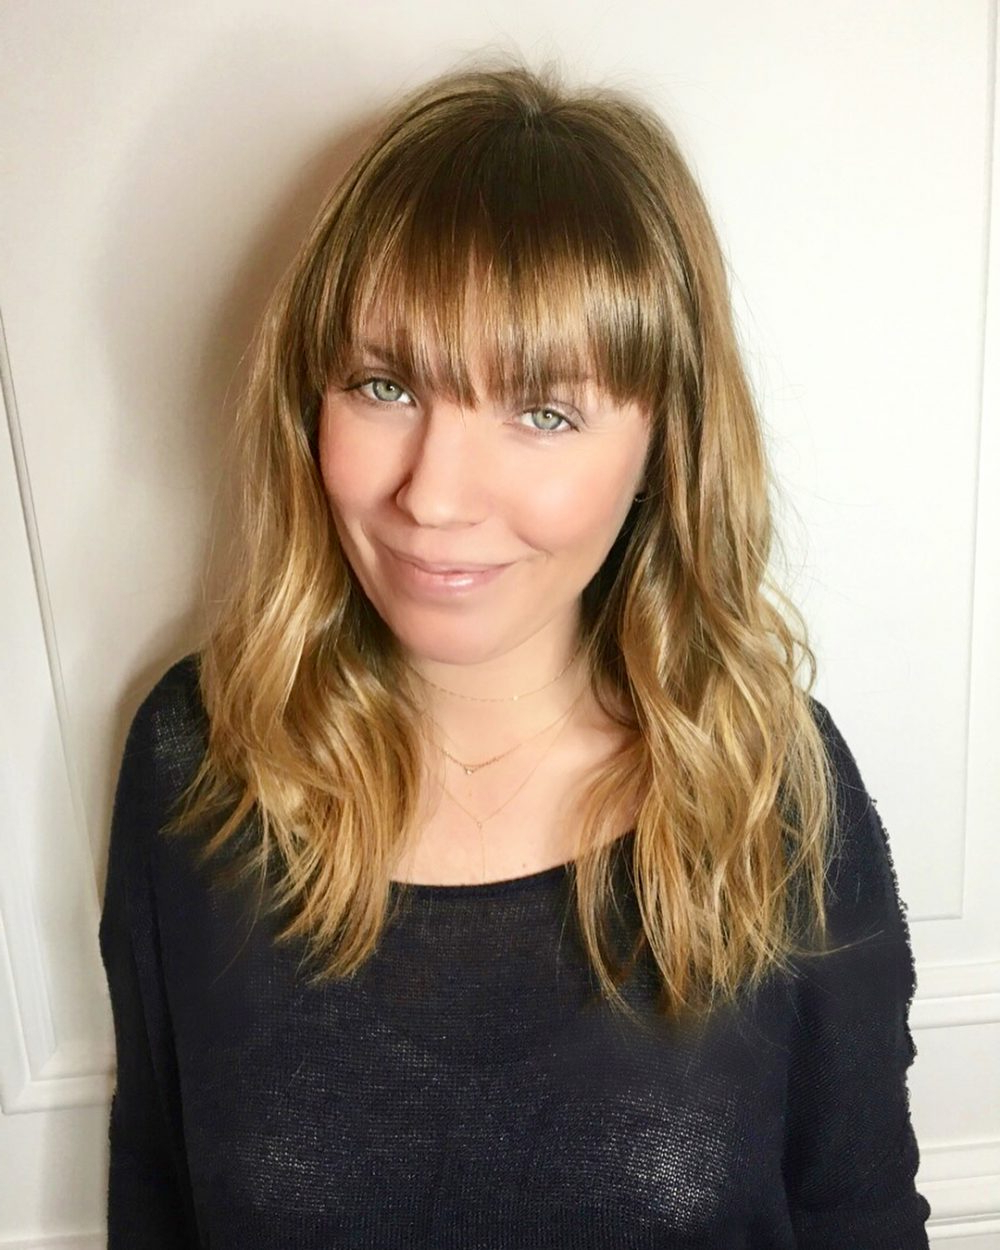 53 Popular Medium Length Hairstyles With Bangs In 2019 In Widely Used Medium Haircuts With Bangs And Glasses (View 6 of 20)